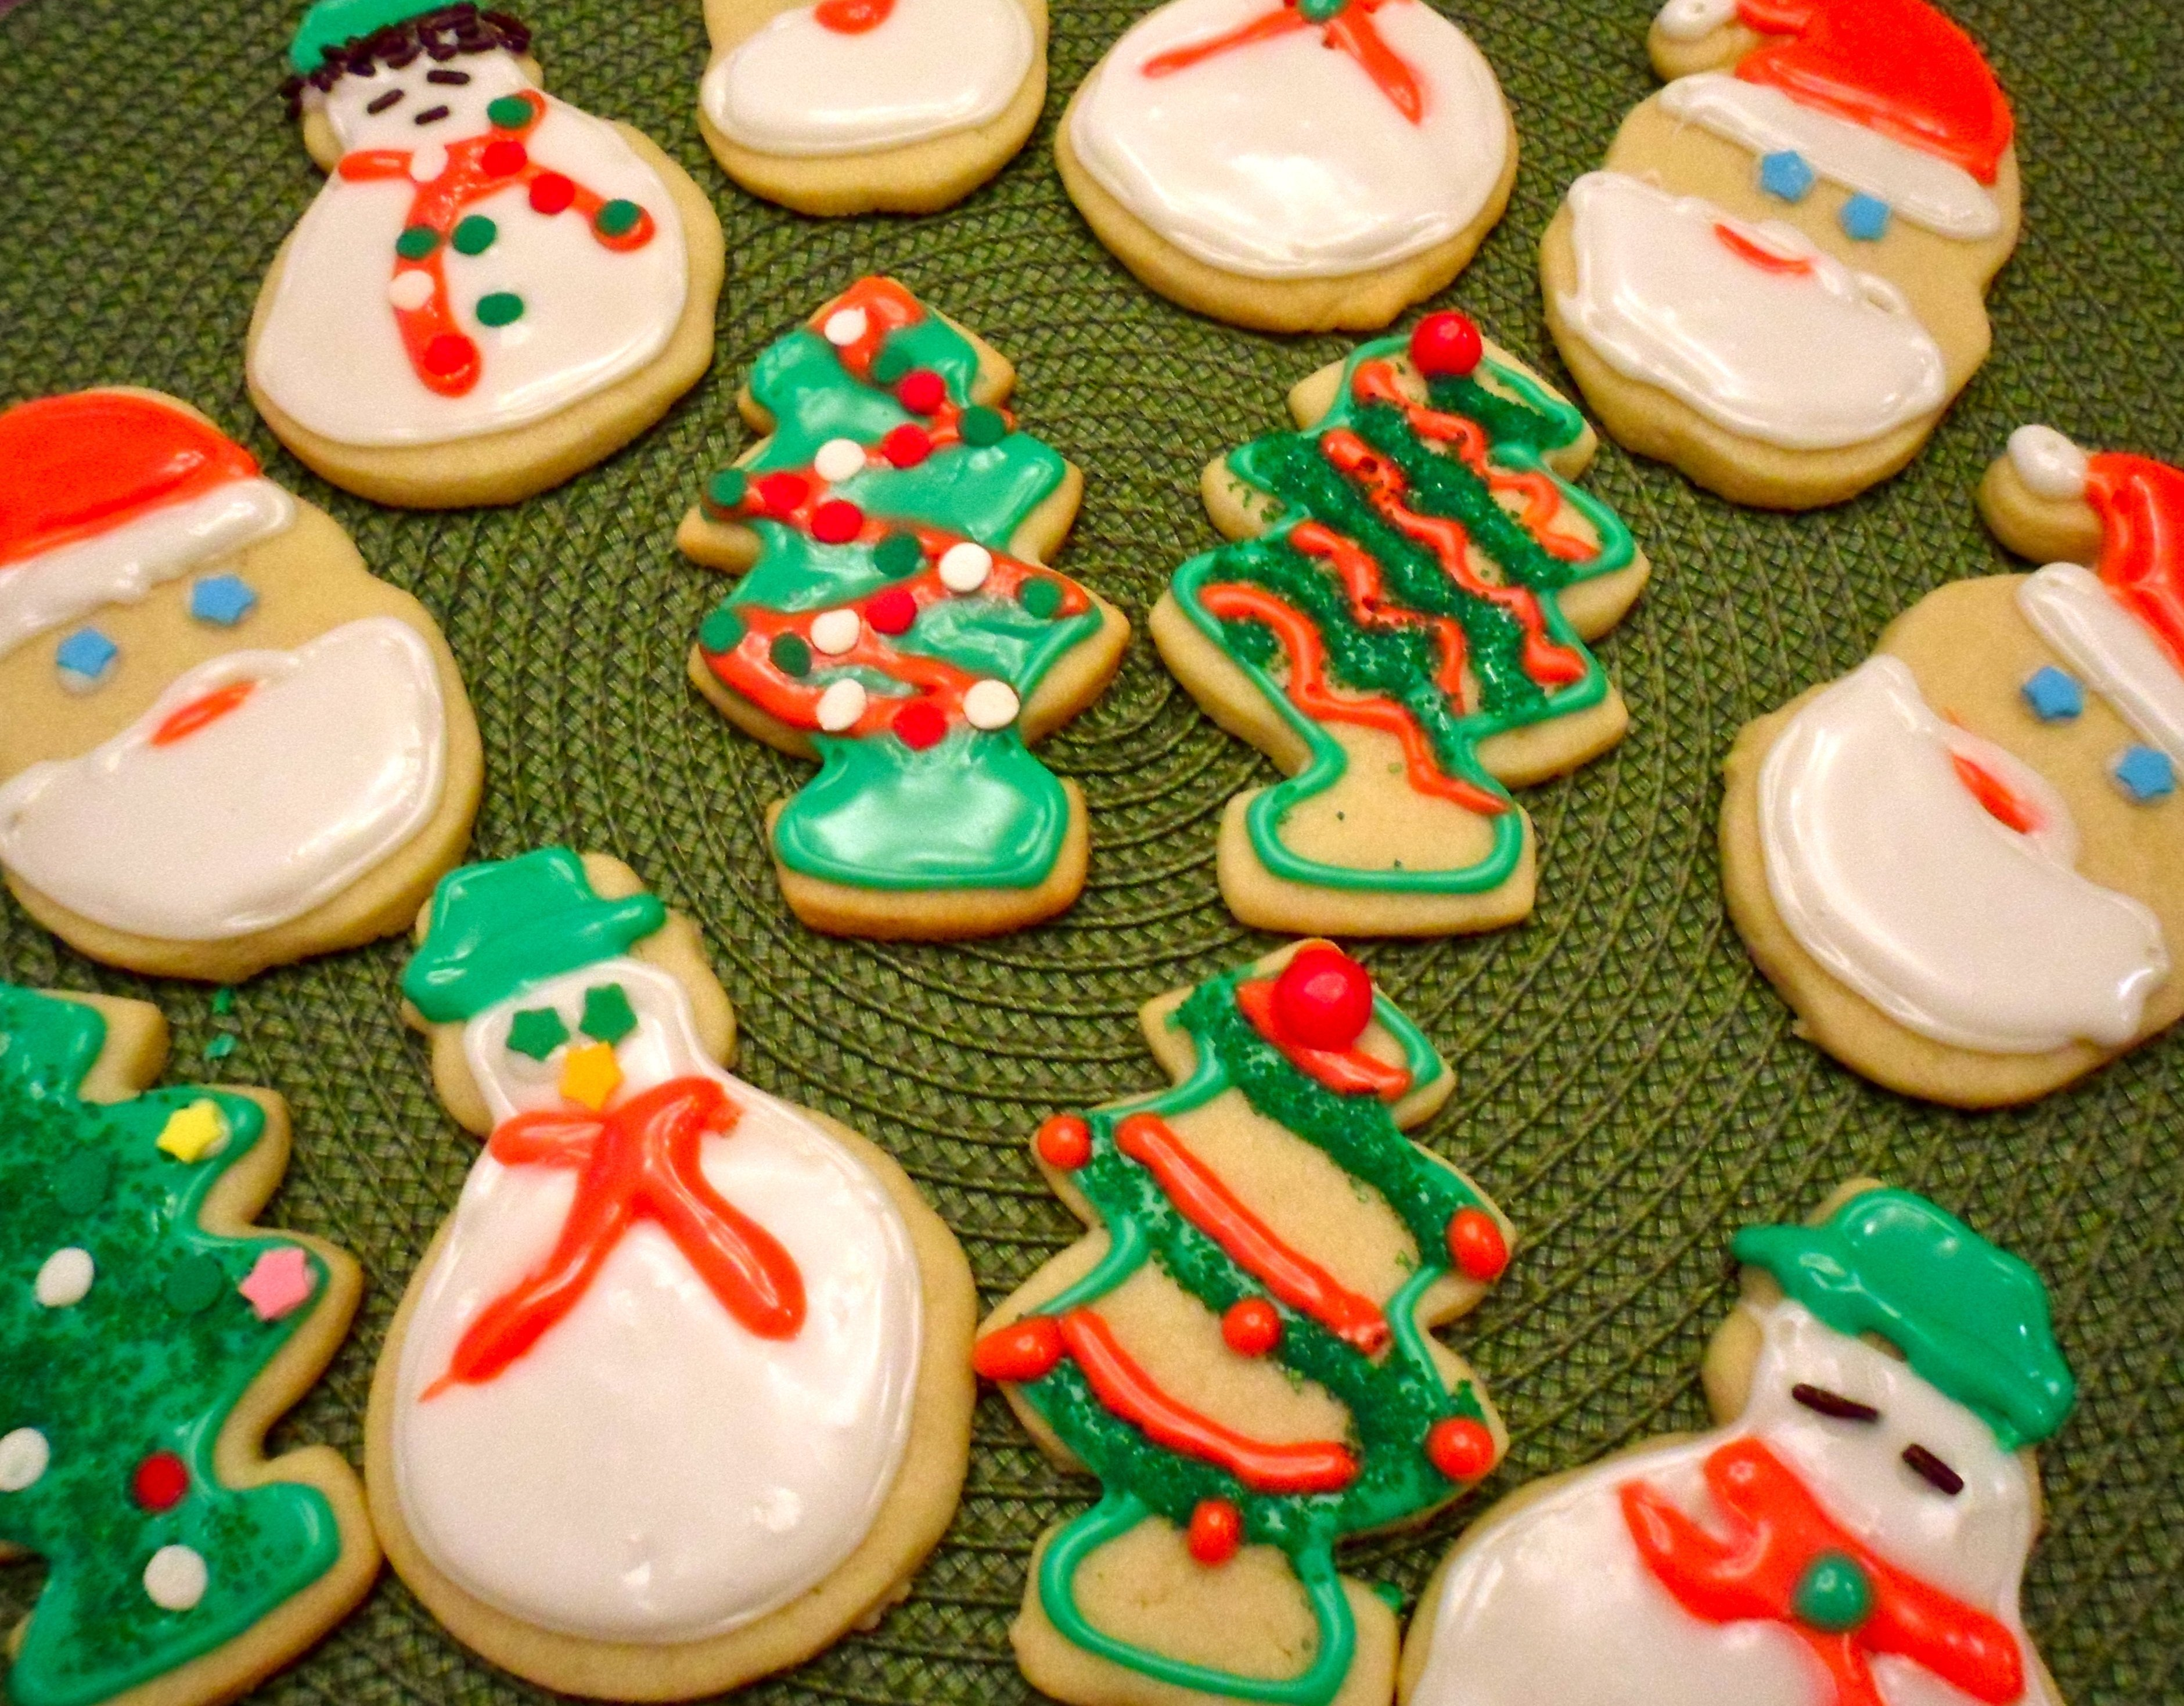 10 Ideal Christmas Sugar Cookie Decorating Ideas 10 Ideal Christmas Sugar Cookie Decorating Ideas ideas about decorating  sugar cookies all in home decor